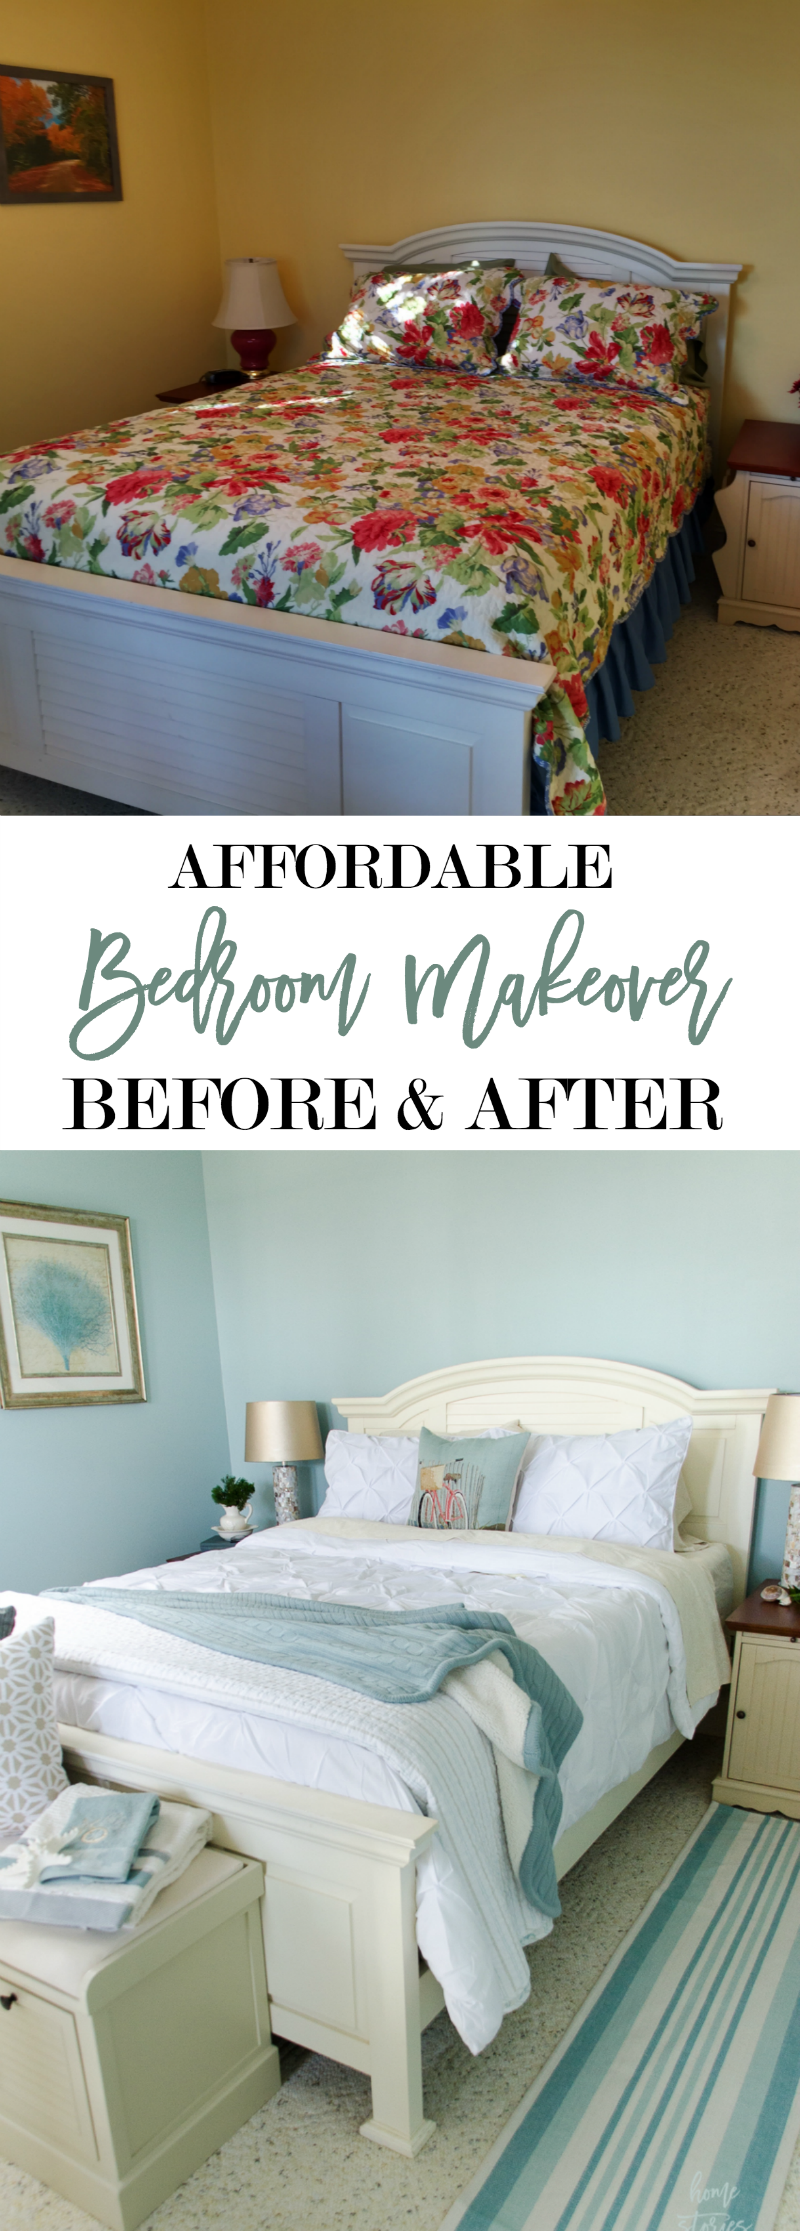 bedroom makeover before and after bedroom makeover before and after 18177